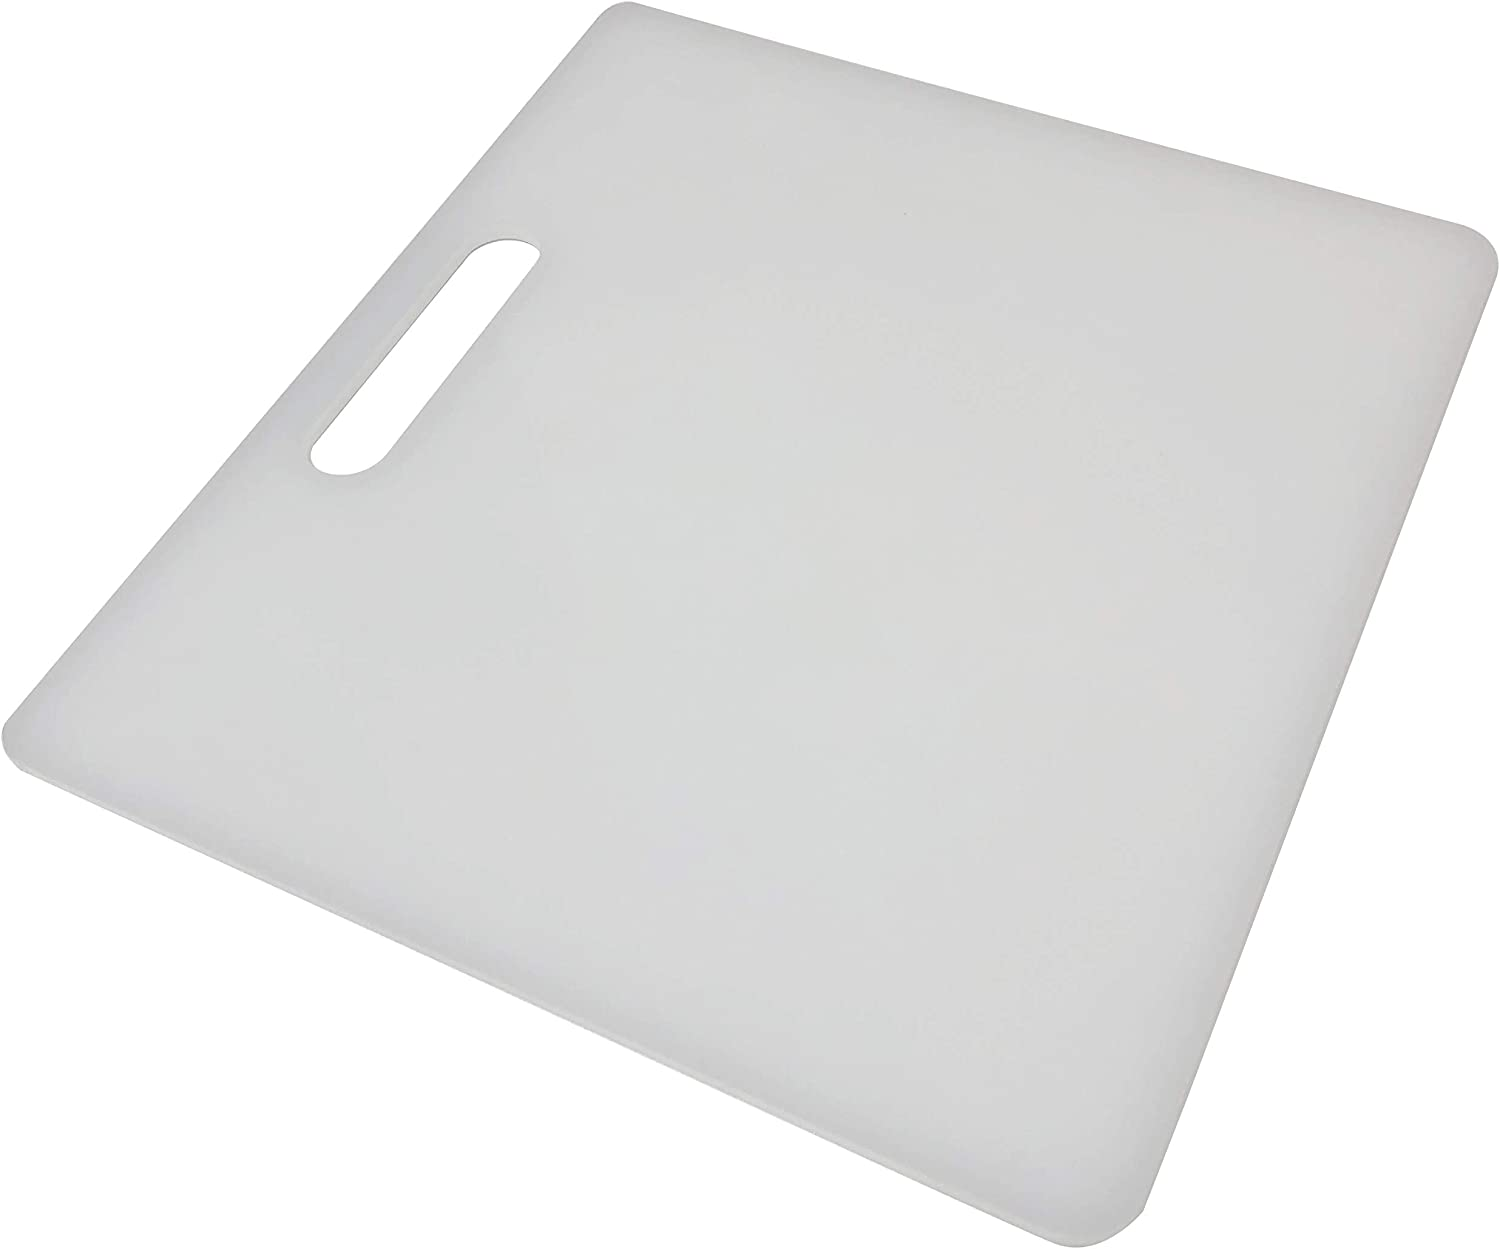 COHO 55Qt Rotomold Cooler Divider, Ice Chest Cutting Board